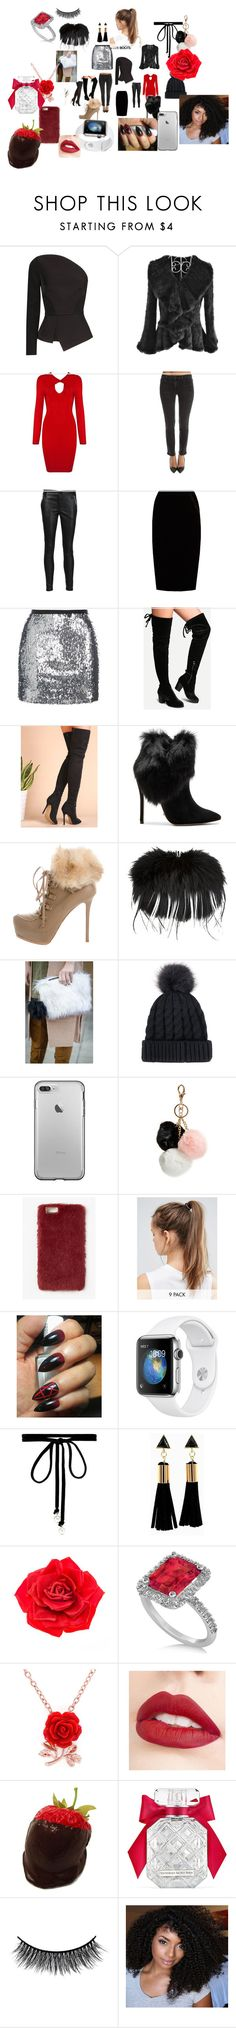 """""""#64"""" by awilliamssaddler ❤ liked on Polyvore featuring Roland Mouret, Helmut Lang, RtA, Jupe By Jackie, Topshop, WithChic, Schutz, Le Silla, Alexander McQueen and GUESS"""